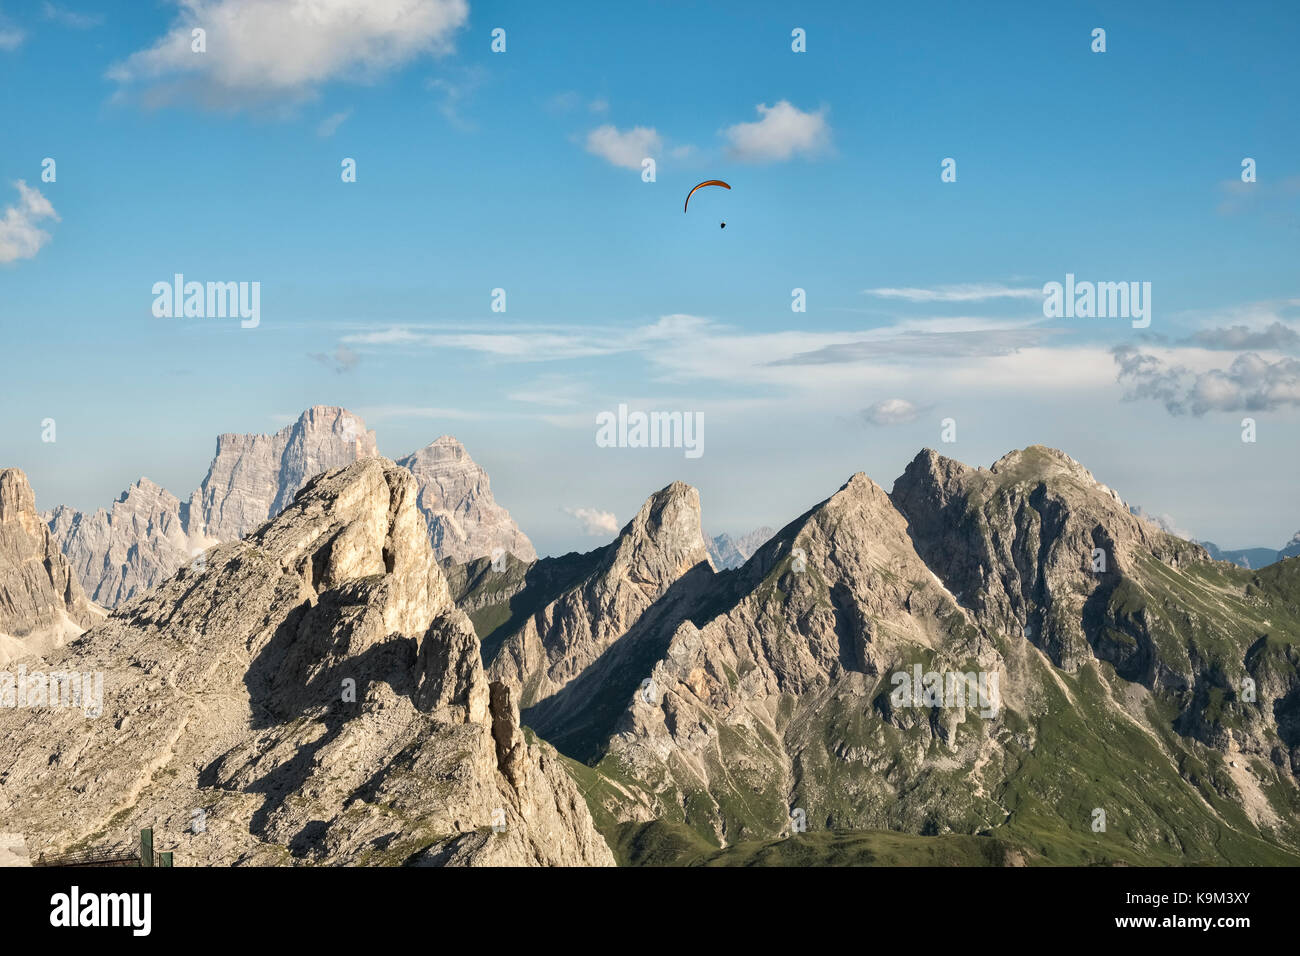 The Dolomites, Northern Italy. A paraglider soars above the tower of Ra Gusela (2595m), seen from the mountain guesthouse - Stock Image